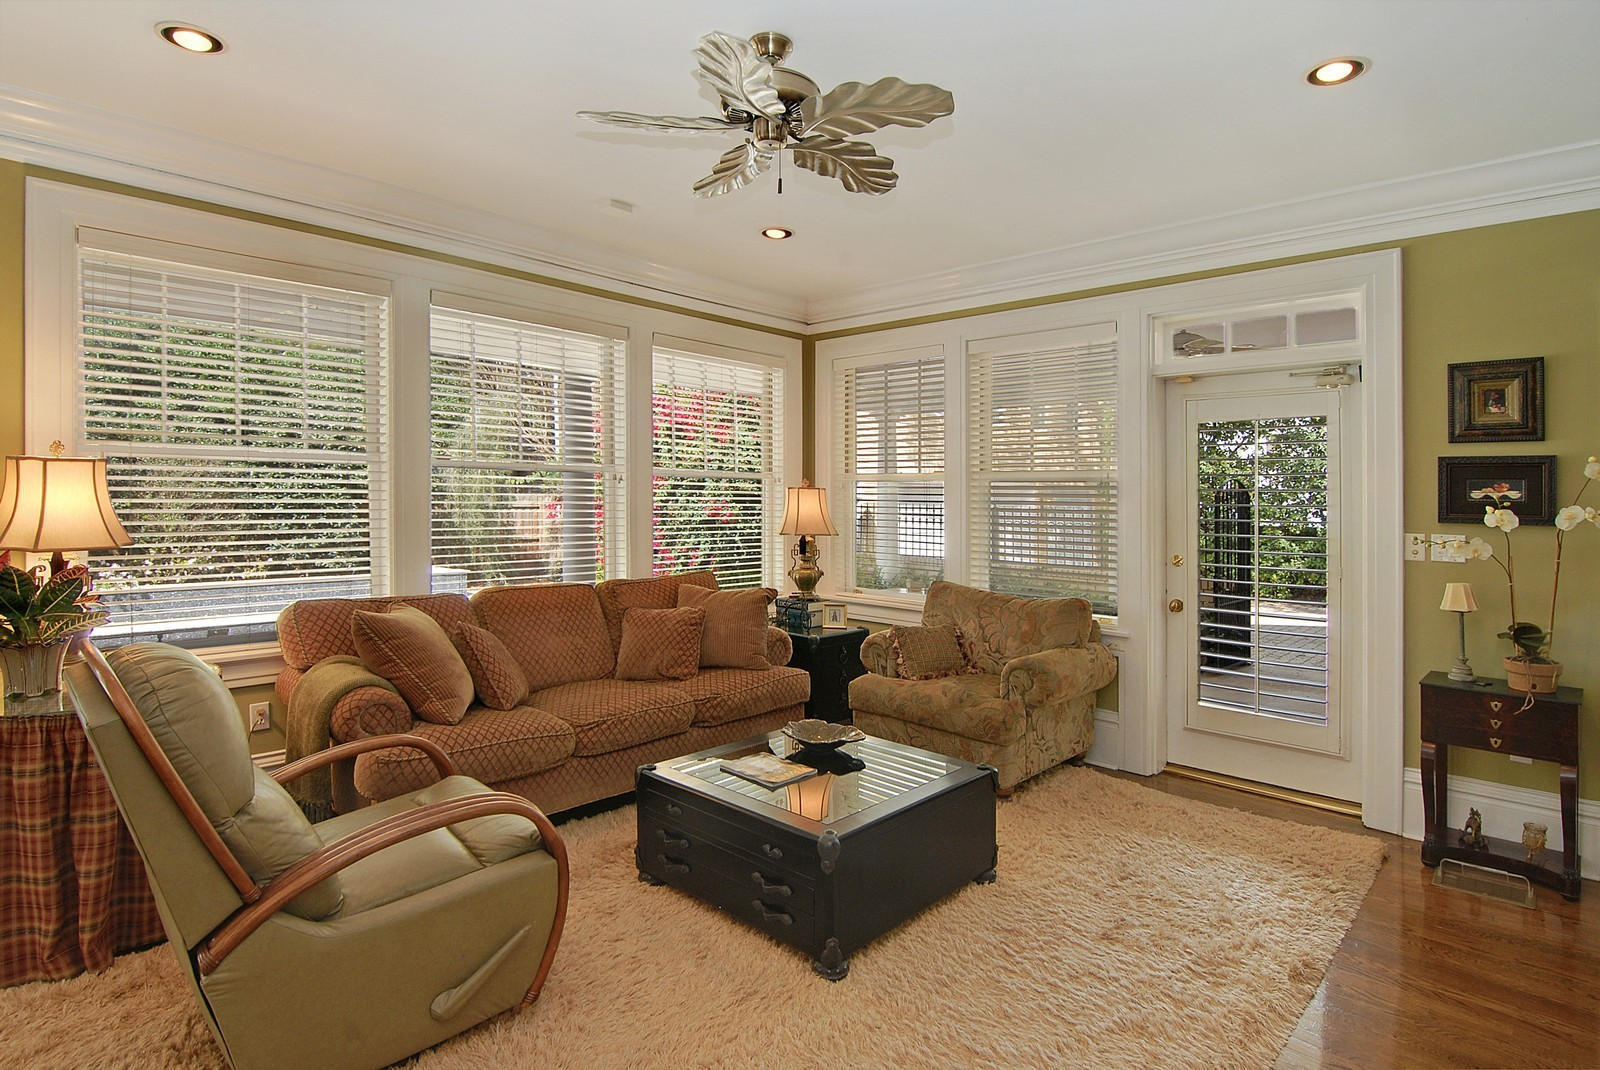 Real Estate Photography - 2223 S. Bendelow Trail, Tampa, FL, 33629 - Family Room